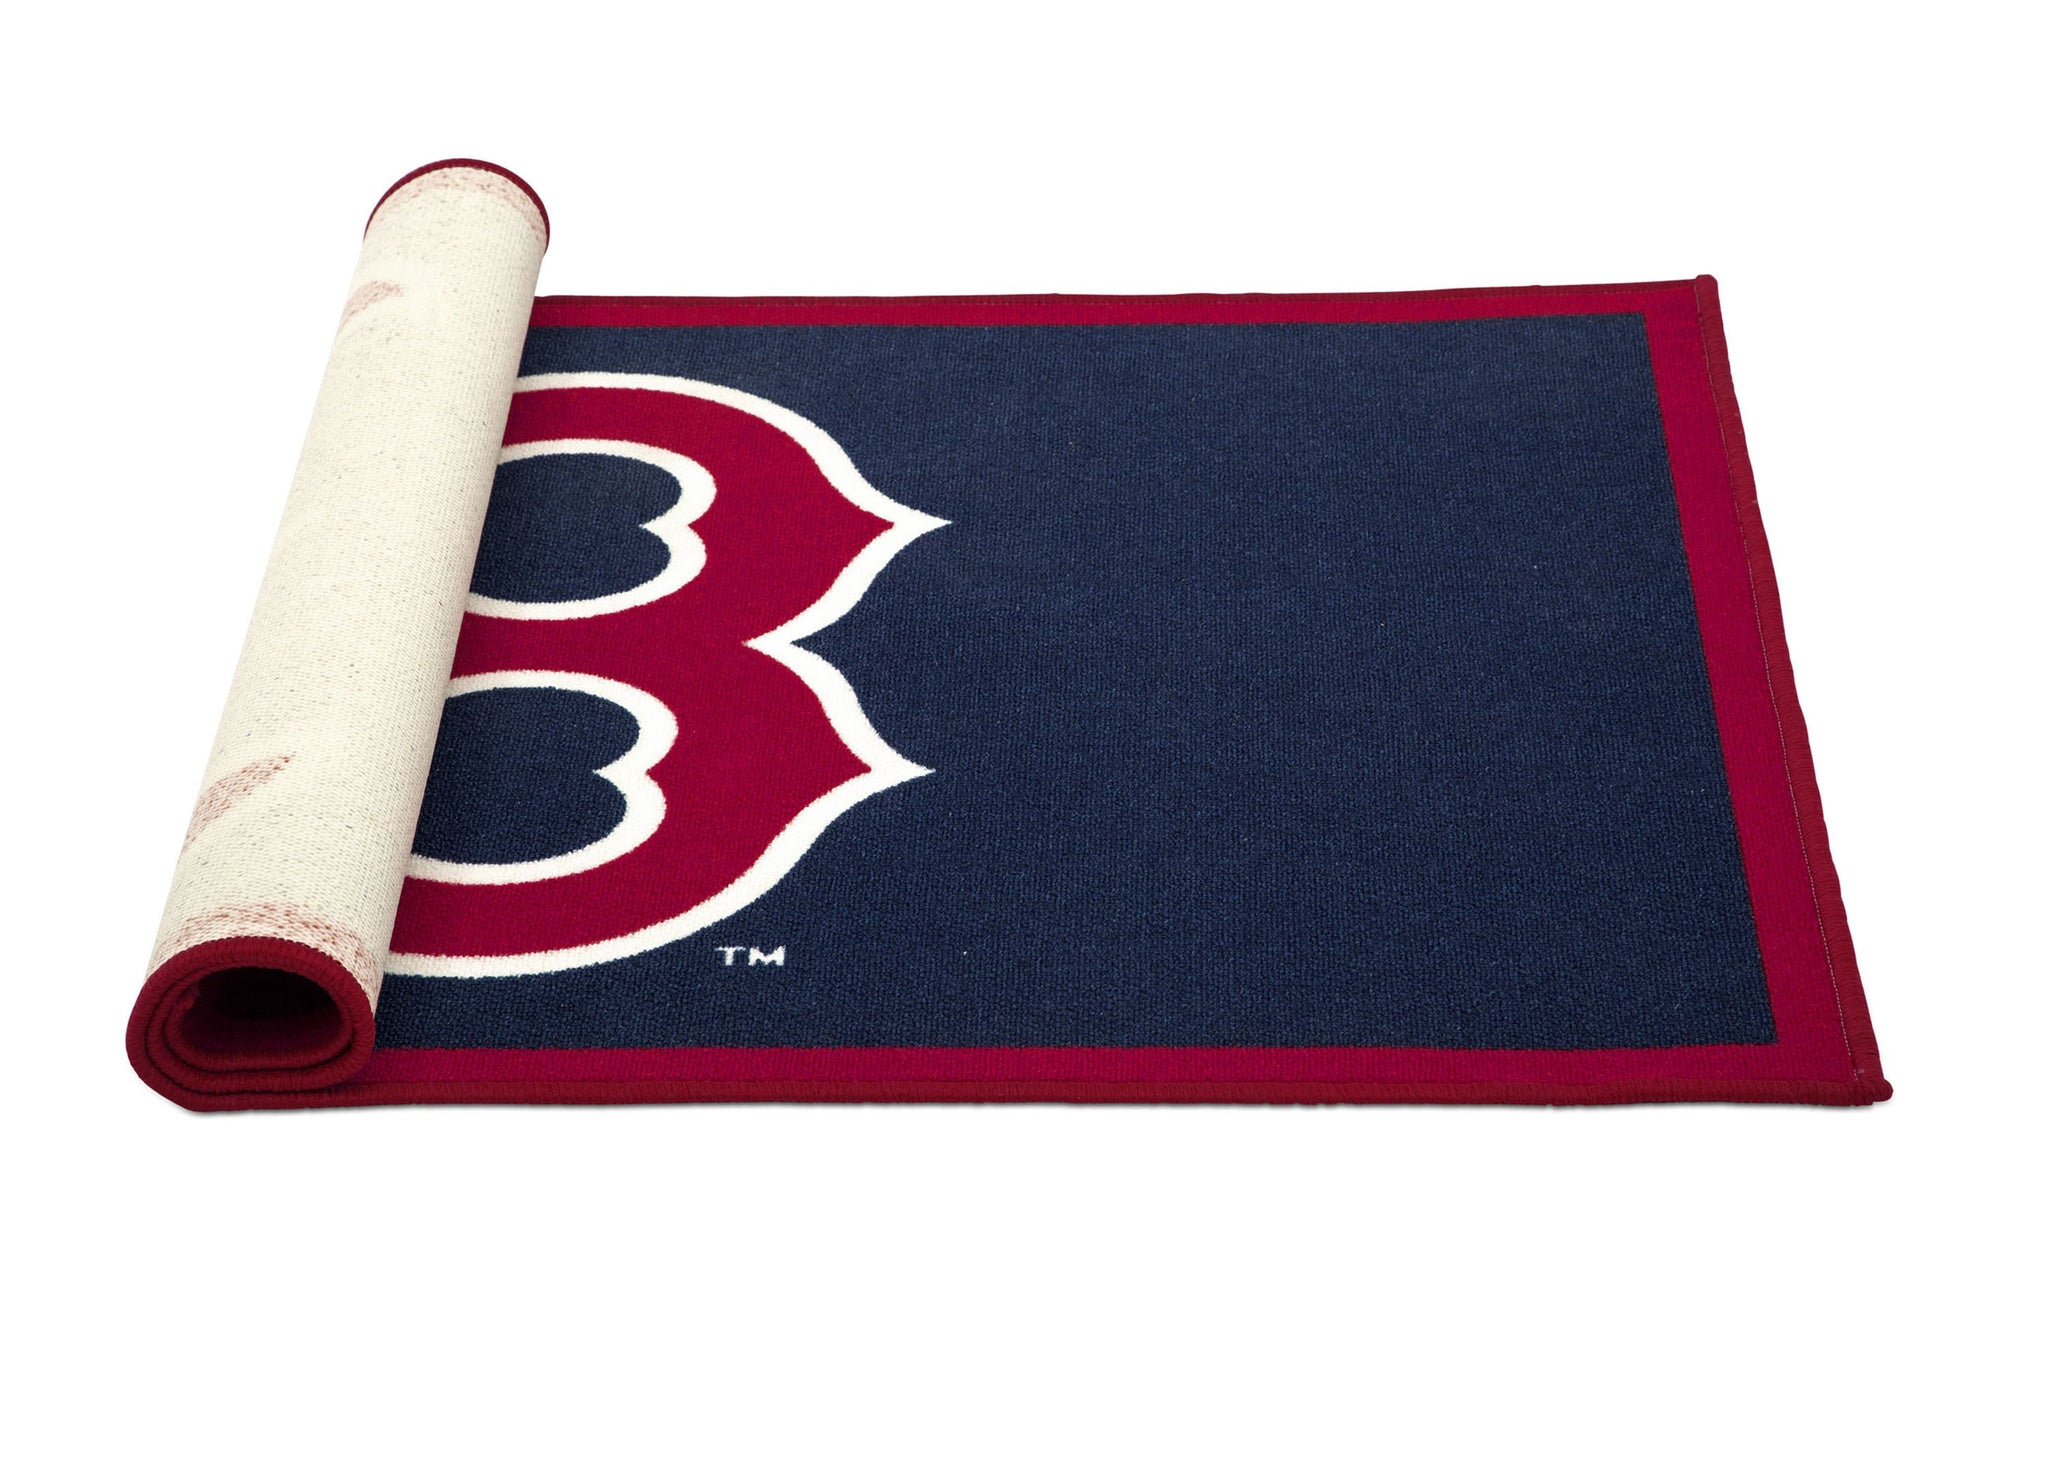 Delta Children Boston Red Sox (1233) Sox Soft Area Rug with Non-Slip Backing (TR9812BOS), Rolled, a3a